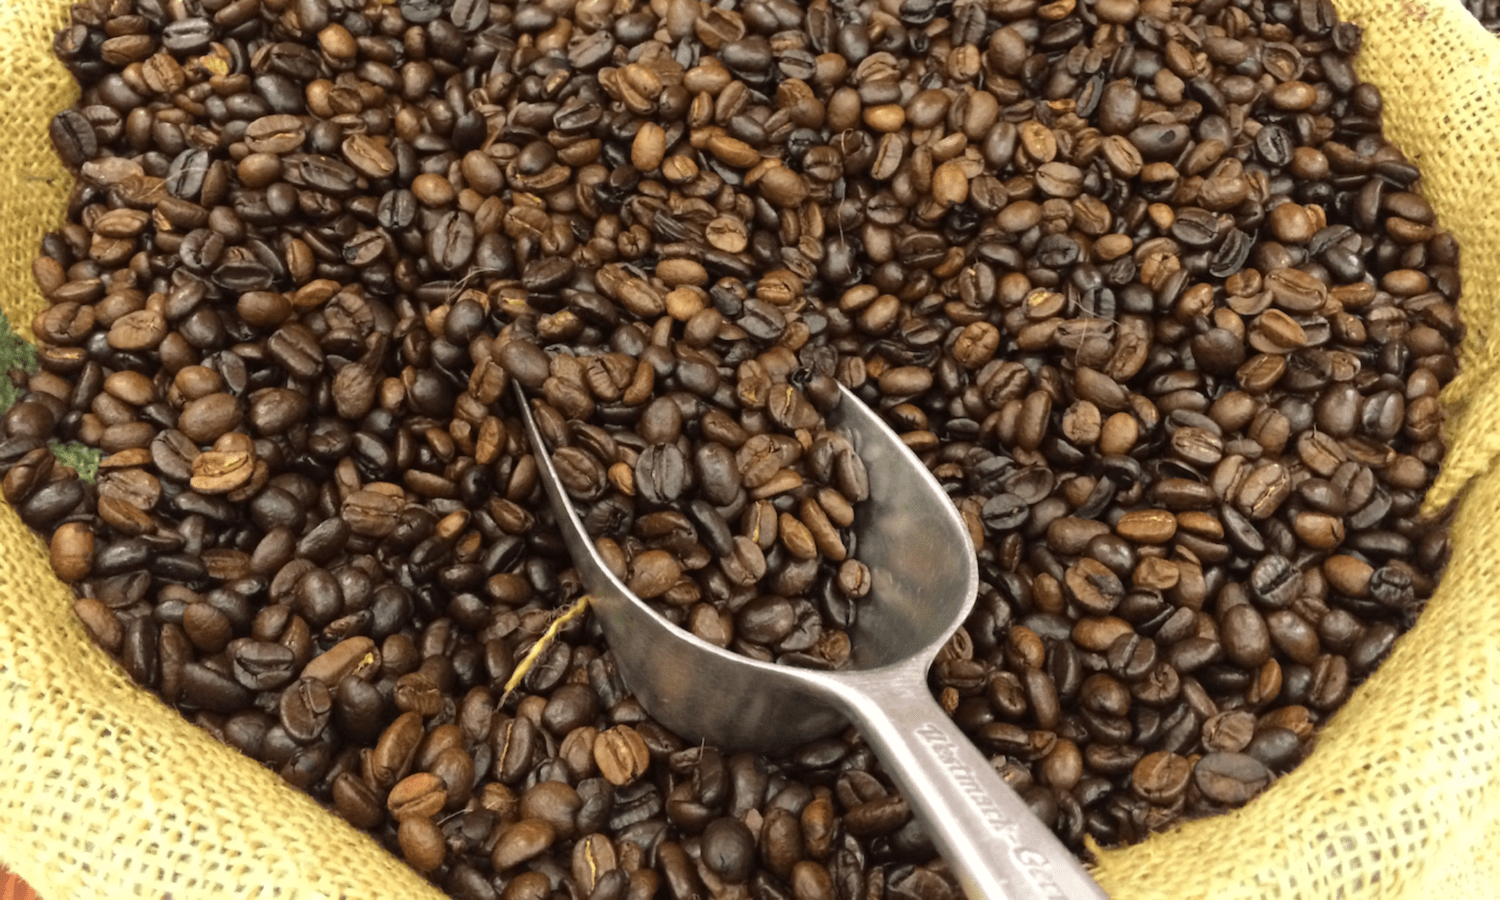 Arabica coffee, the world's most popular variety, might be extinct in Ethiopia by 2080 due to climate change.